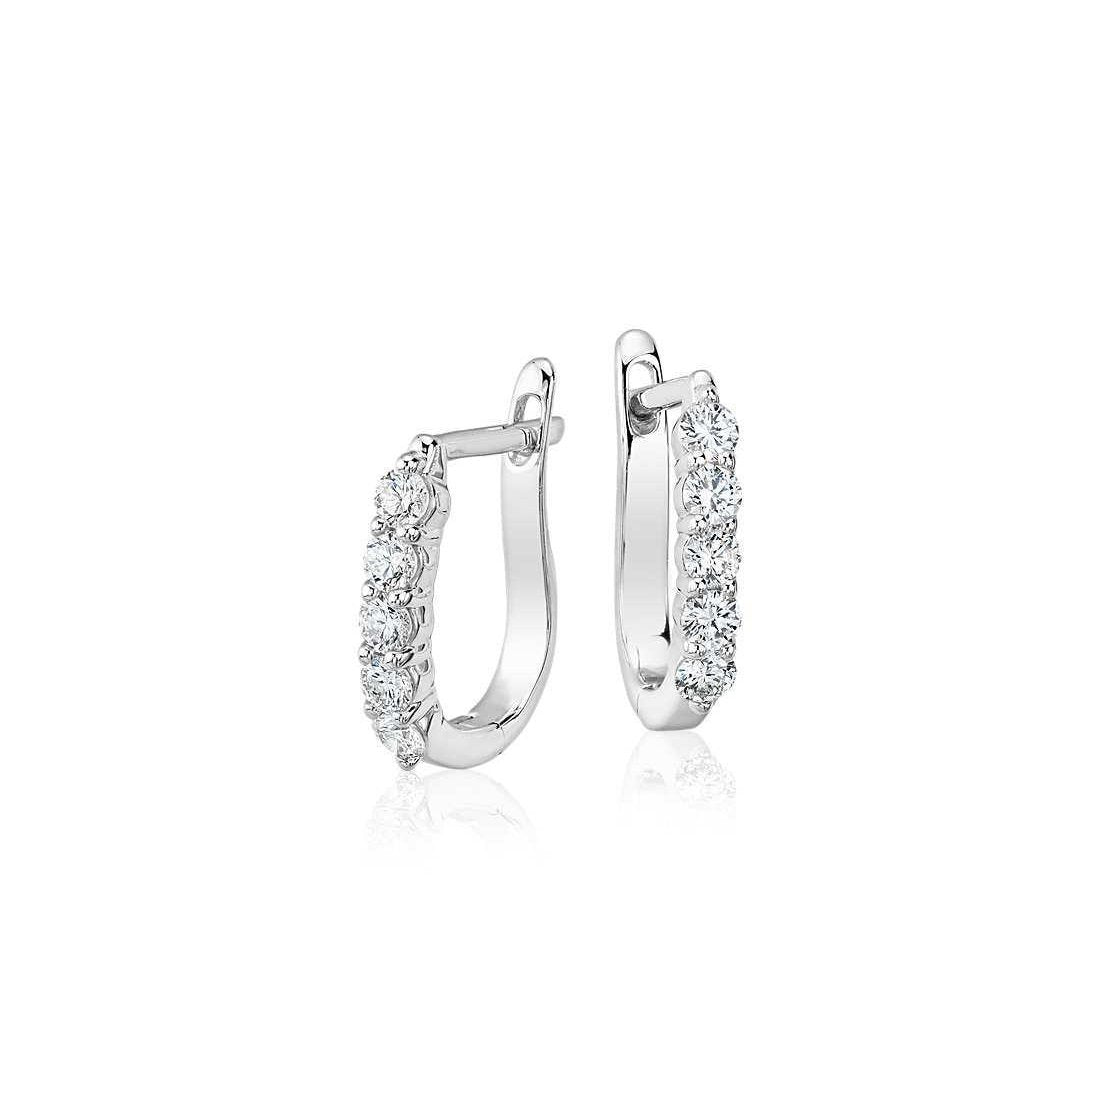 White Gold 14K Ladies Hoop Earrings 2 Ct Round Brilliant Cut Diamonds Hoop Earrings